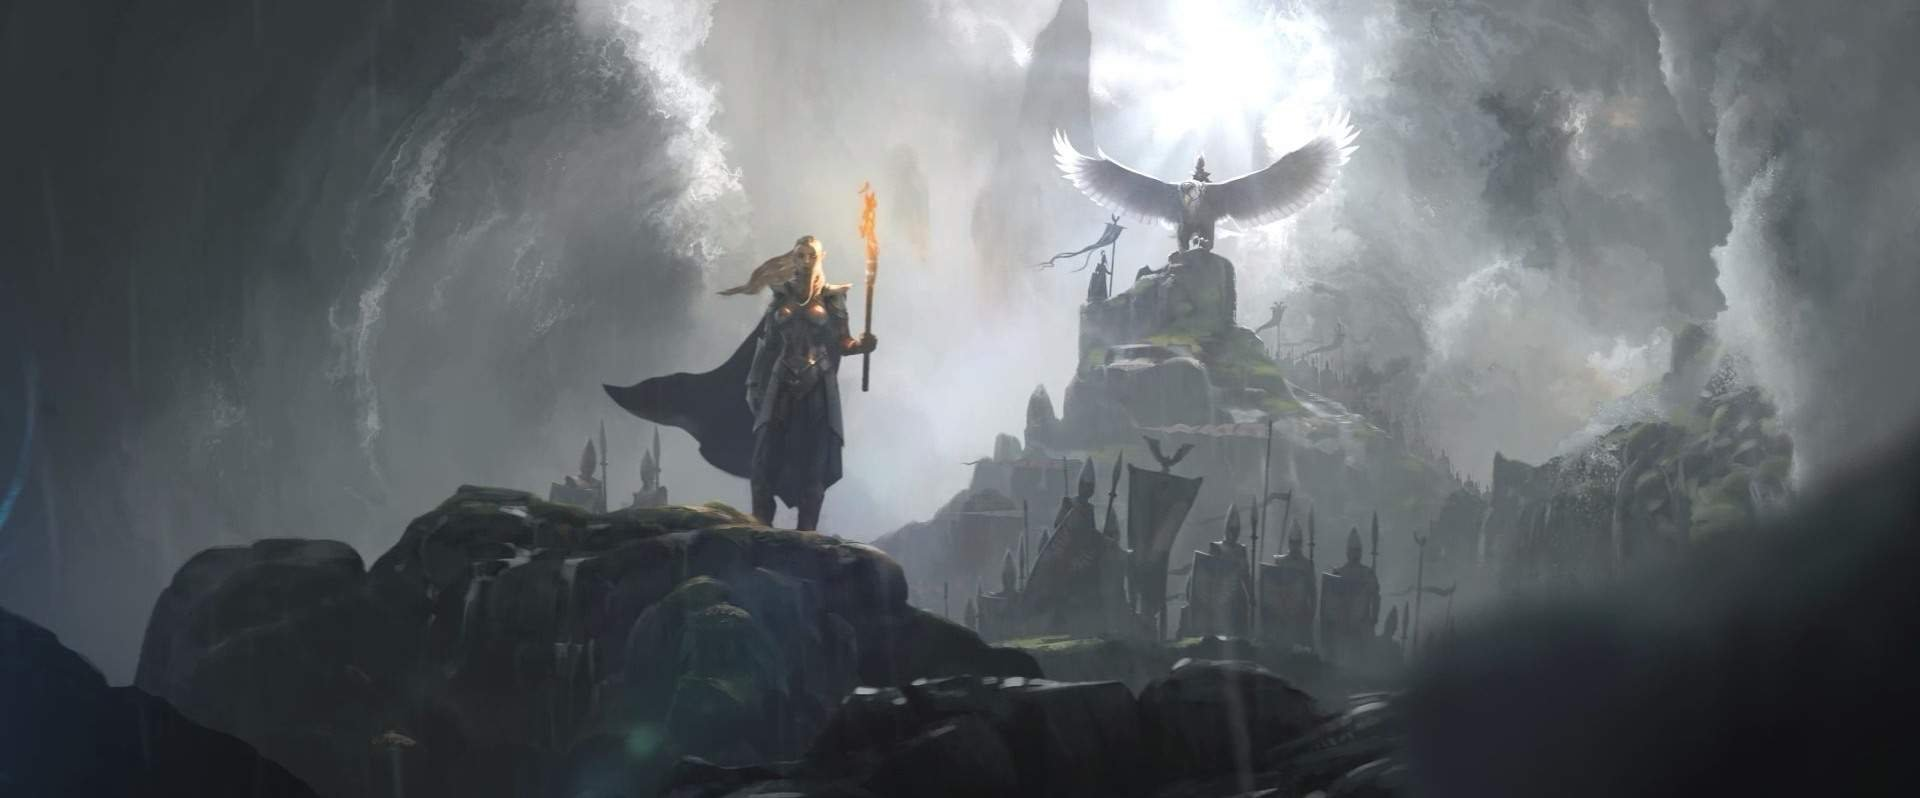 Total War Warhammer Ii Ultimate Vortex Campaign Guide His arrival is a tangible portent that a battle of great import is about to. total war warhammer ii ultimate